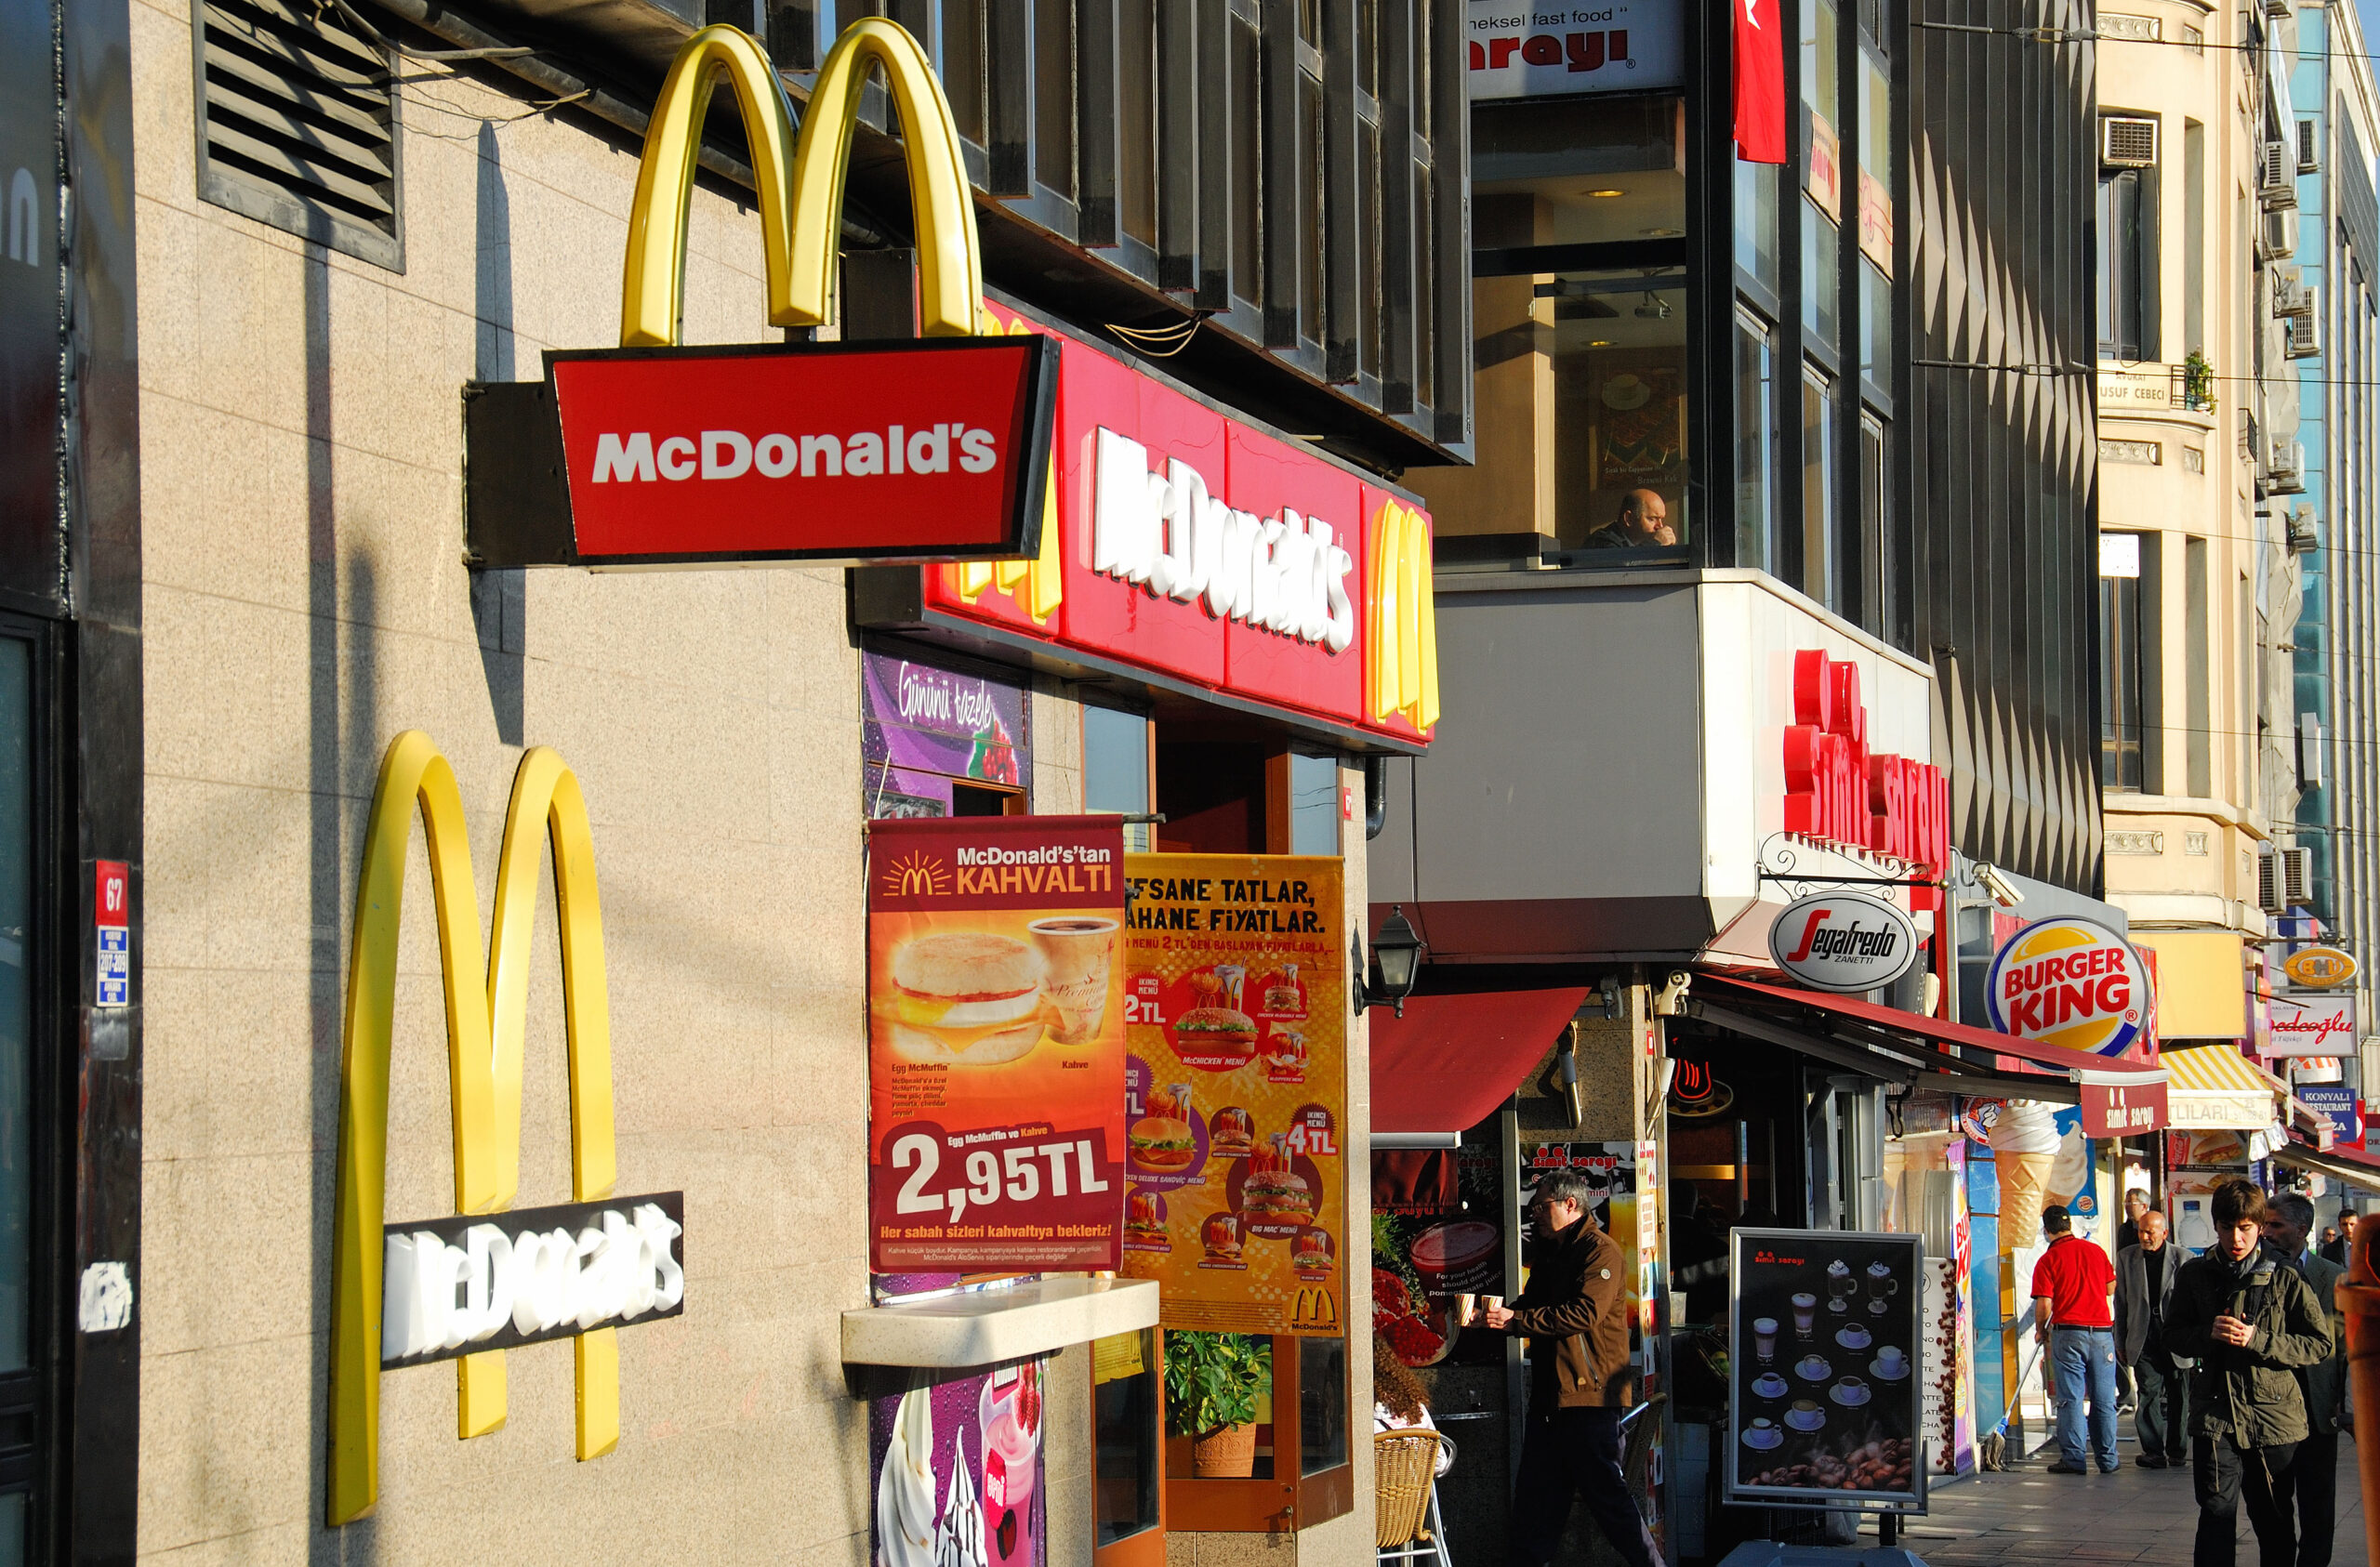 Fast food scandals